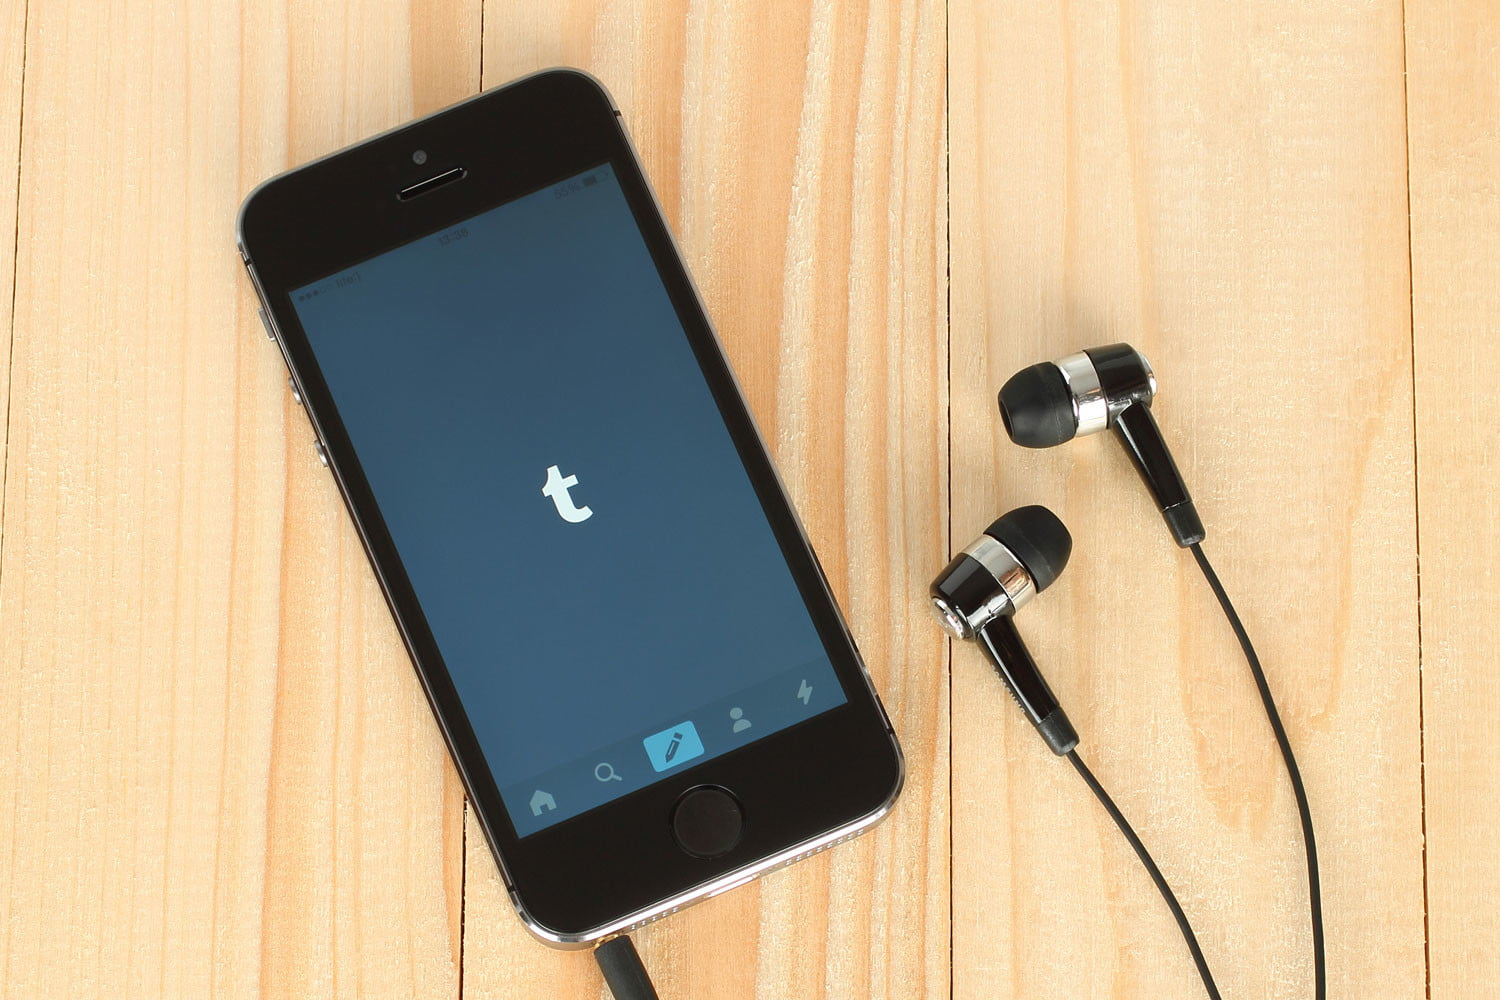 Tumbr for iOS Taken Down from App Store, Likely Due to NSFW